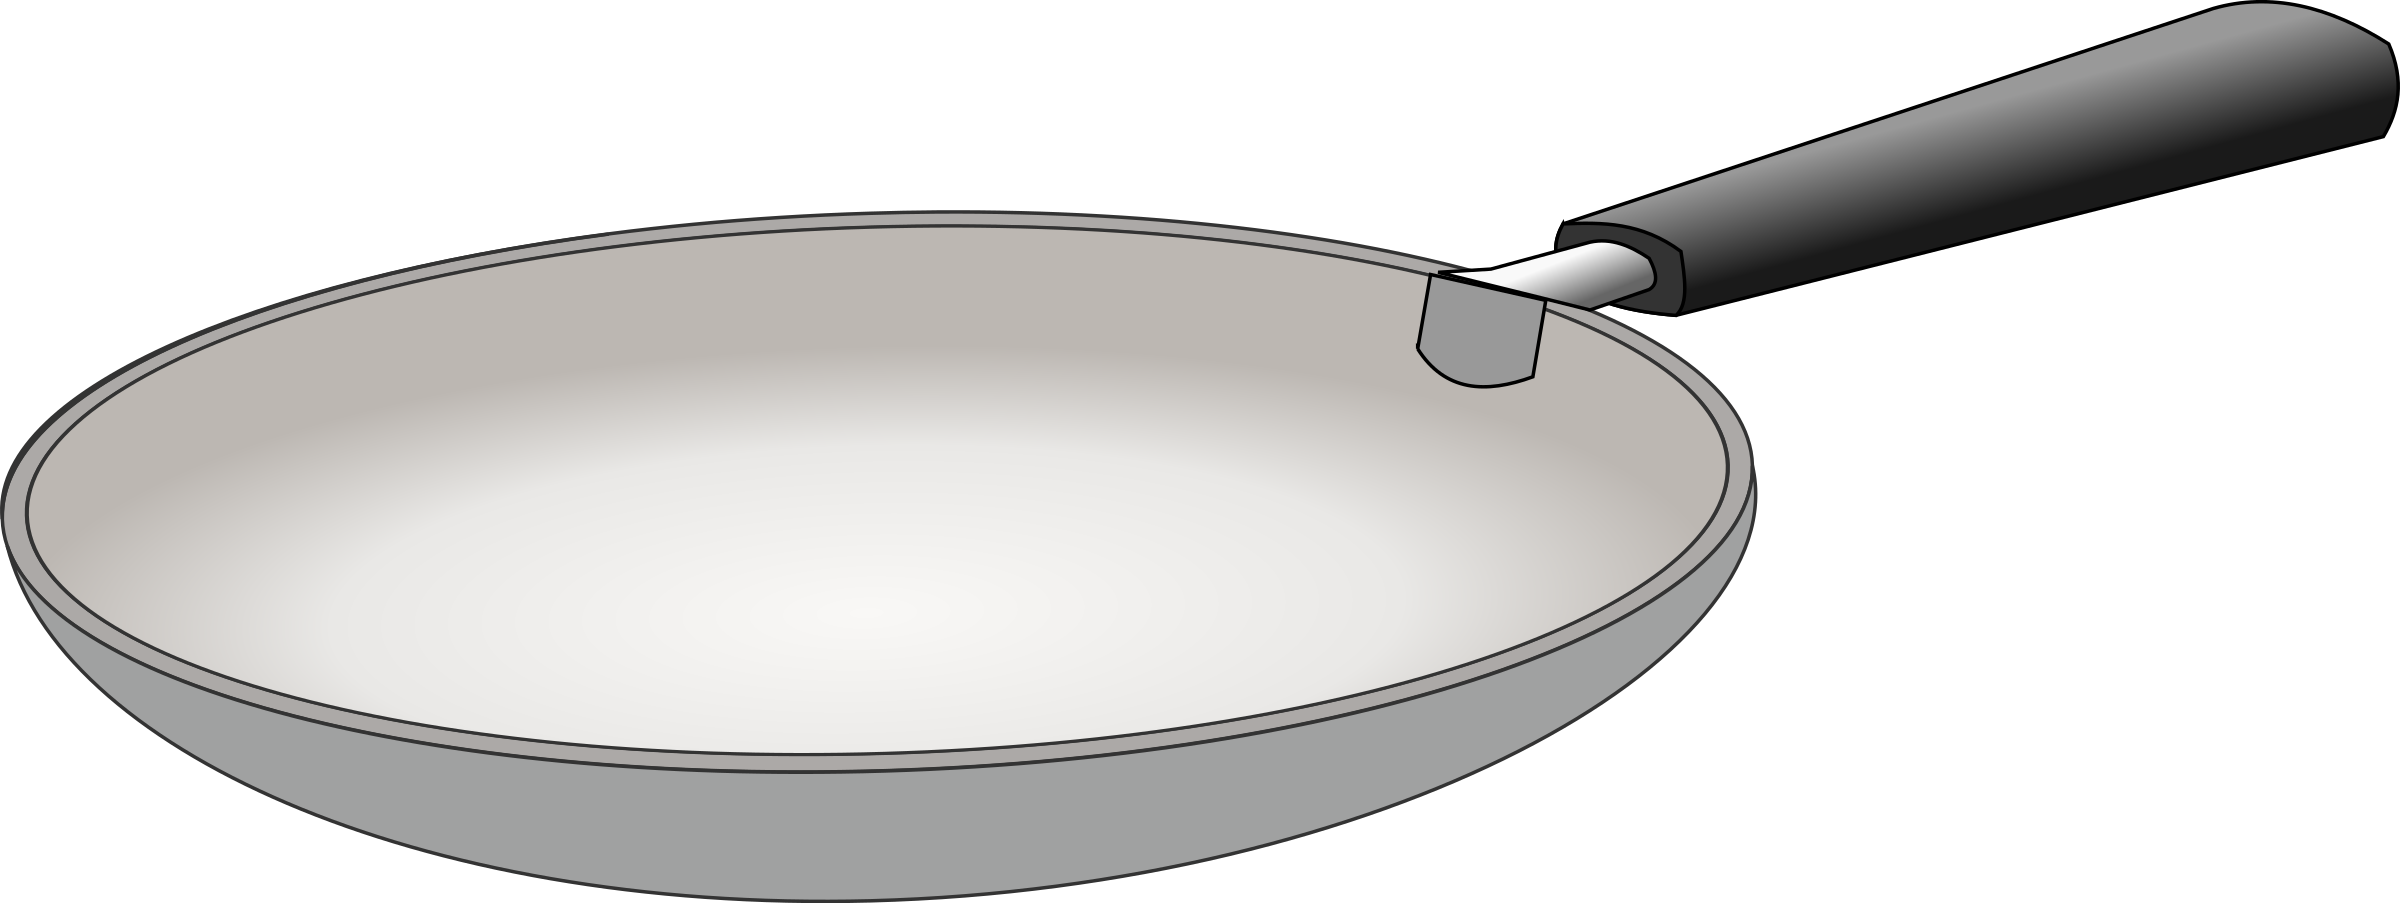 Clipart padella frying pan for Art and cuisine pans